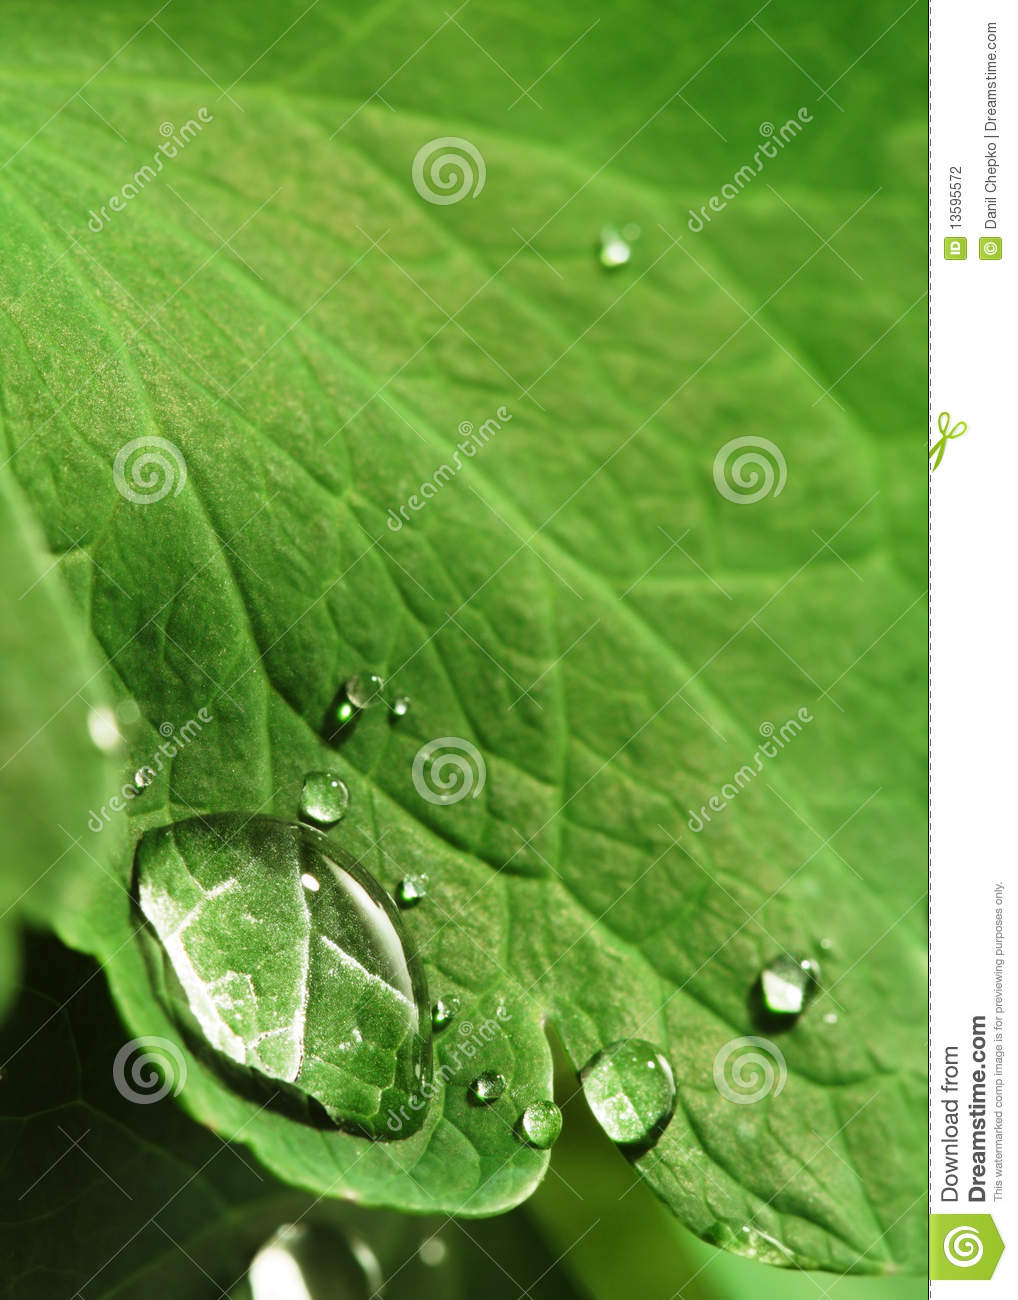 Stock Photography  Water drop on leafWater Drop Photography On Leaf